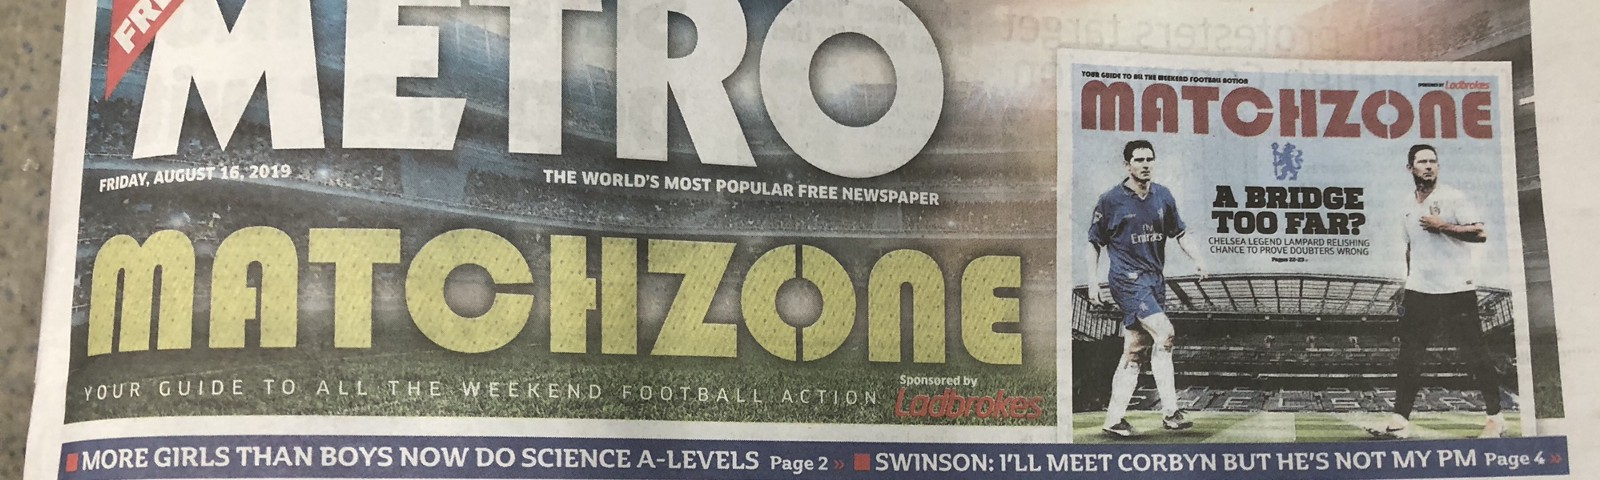 A photograph of the Metro newspaper header.